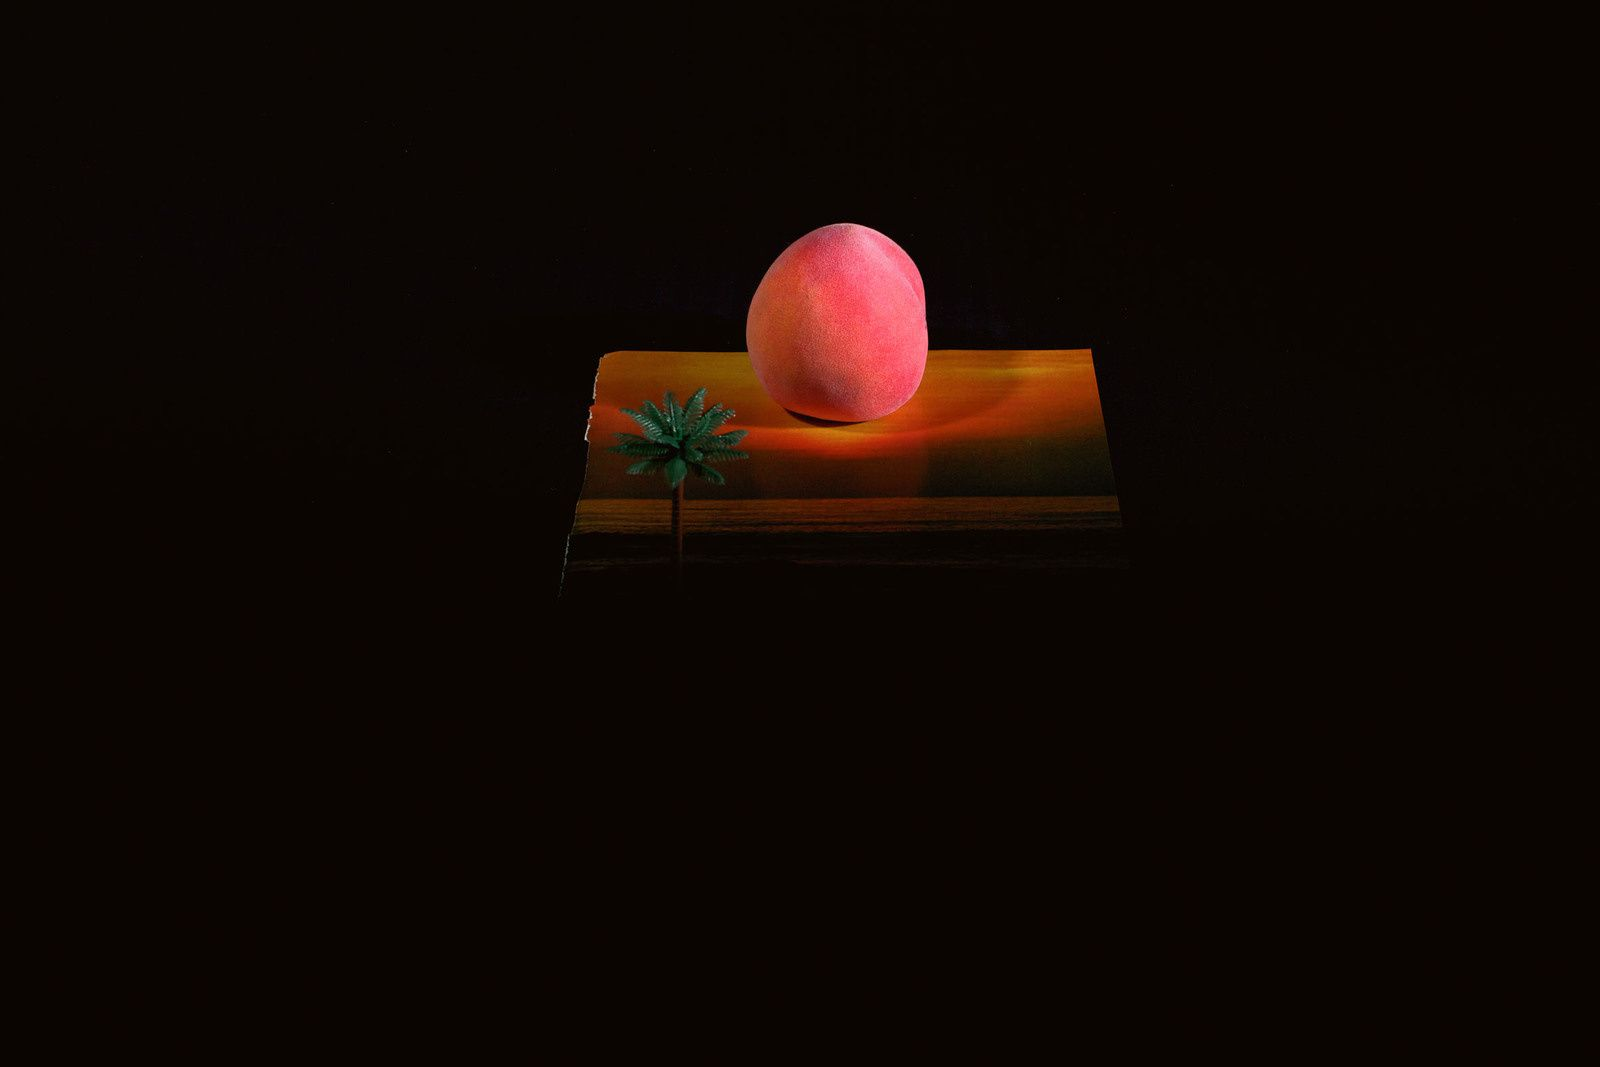 Friedrich Kunath, Untitled (Peach Sunset), 2011. Tirage couleur, 33.7 x 50.8 cm (éd. 6). Photo : Ben Westoby, Londres. Courtesy Blum & Poe, Los Angeles &#x3B; BQ, Berlin &#x3B;Andrea Rosen Gallery, New York &#x3B; White Cube, Londres.